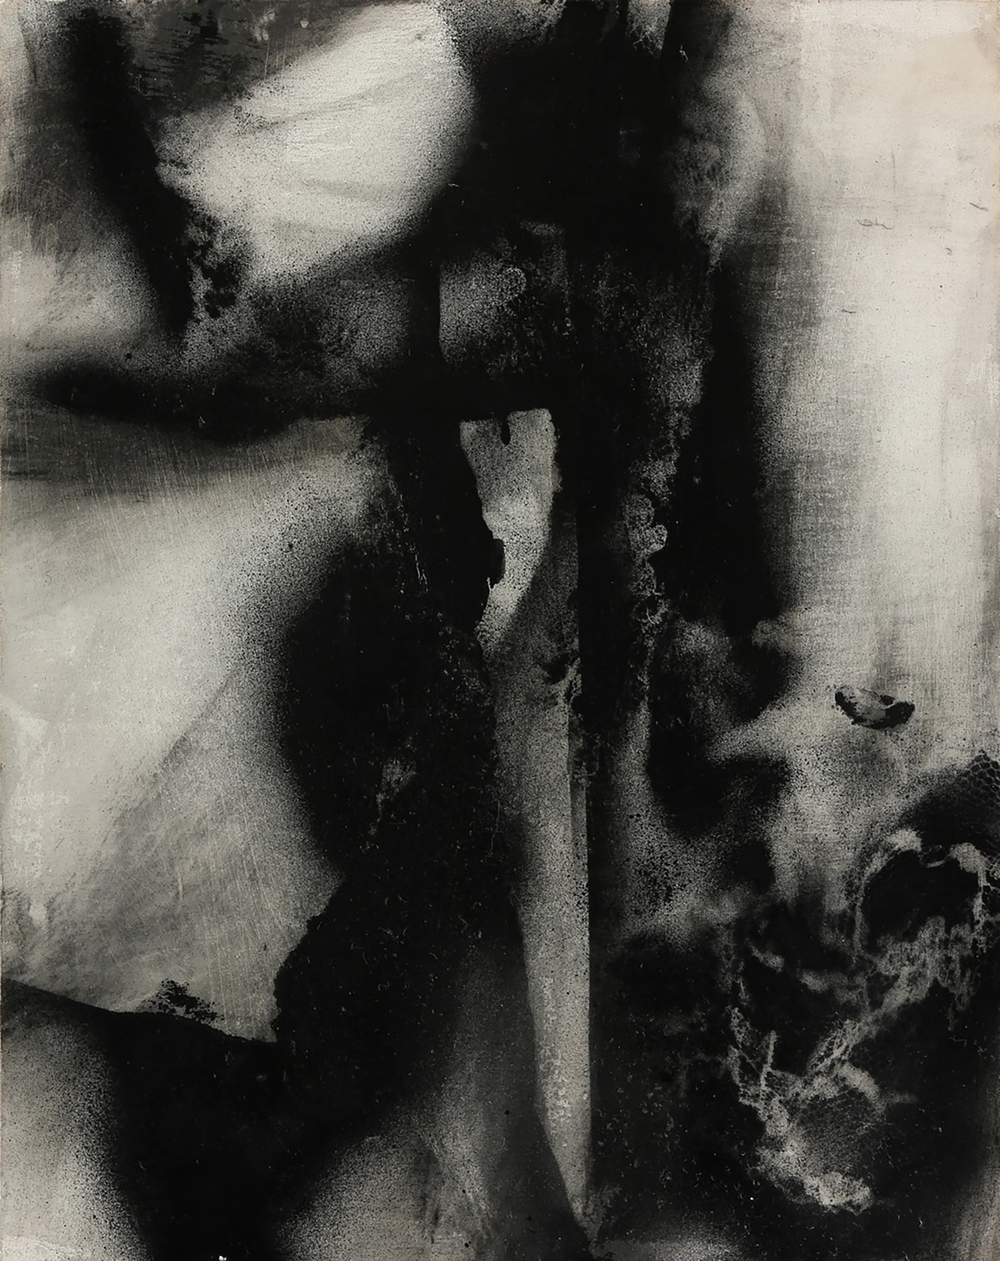 """Untitled_3  18"""" x 24"""", charcoal, ink, and oil on wood panel,2014"""